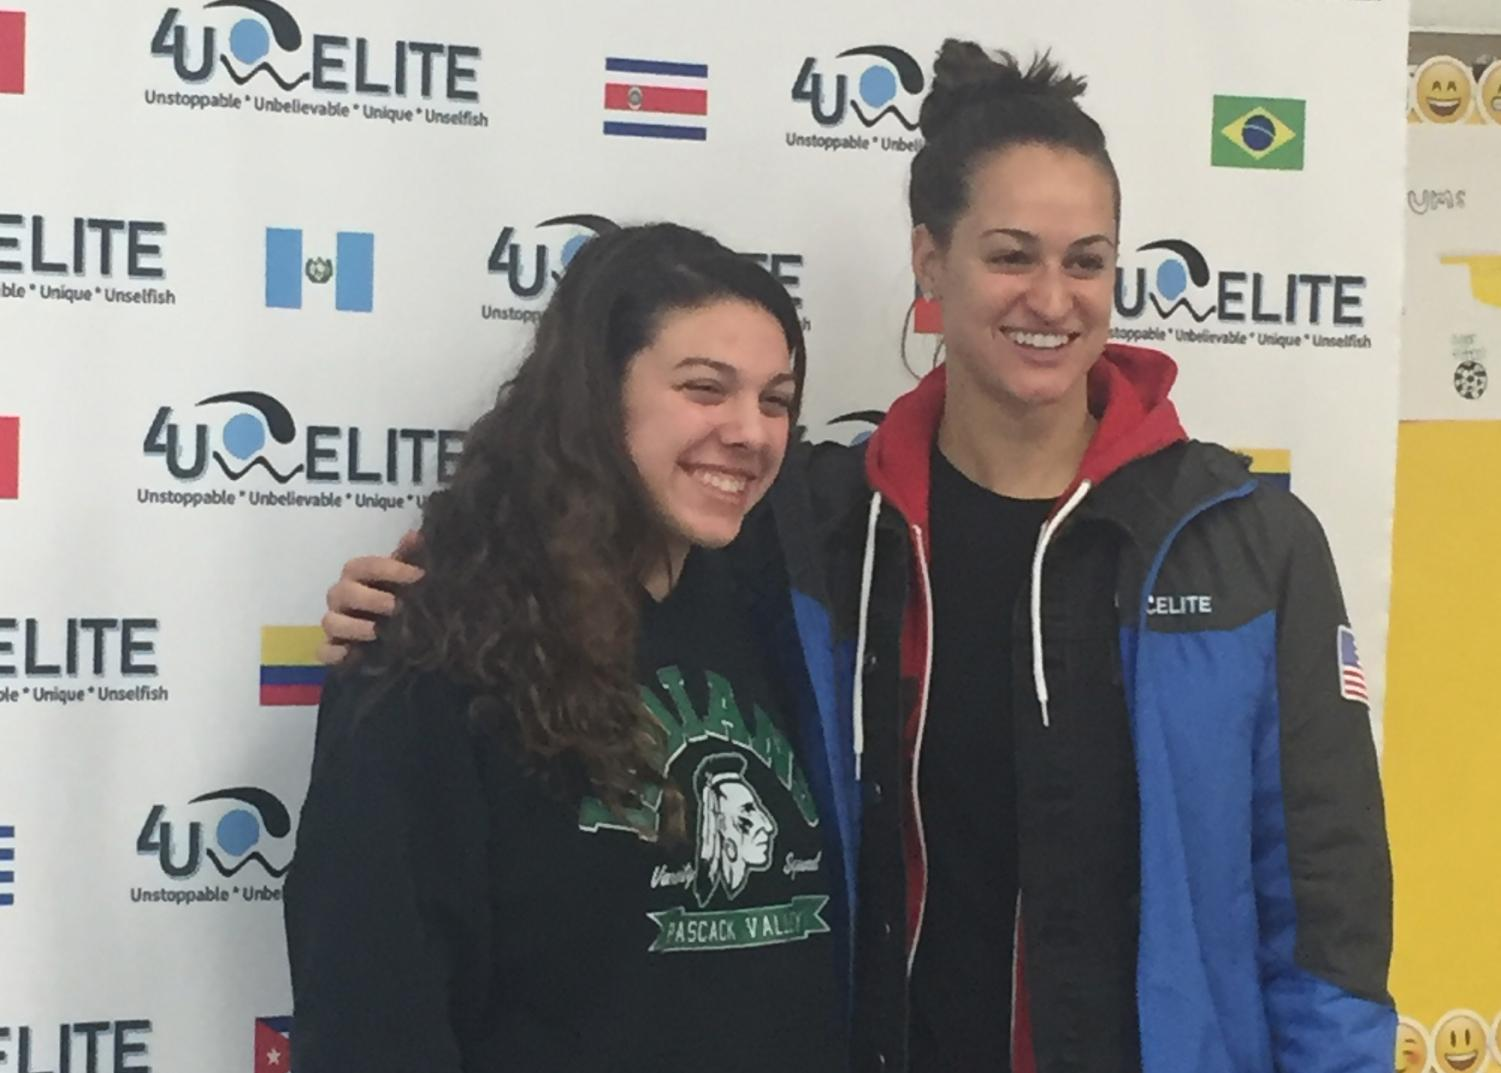 Haleigh Marzano (left) poses with Team USA swimmer Megan Romano. Romano surprised Marzano by inviting her to swim with her at a clinic.